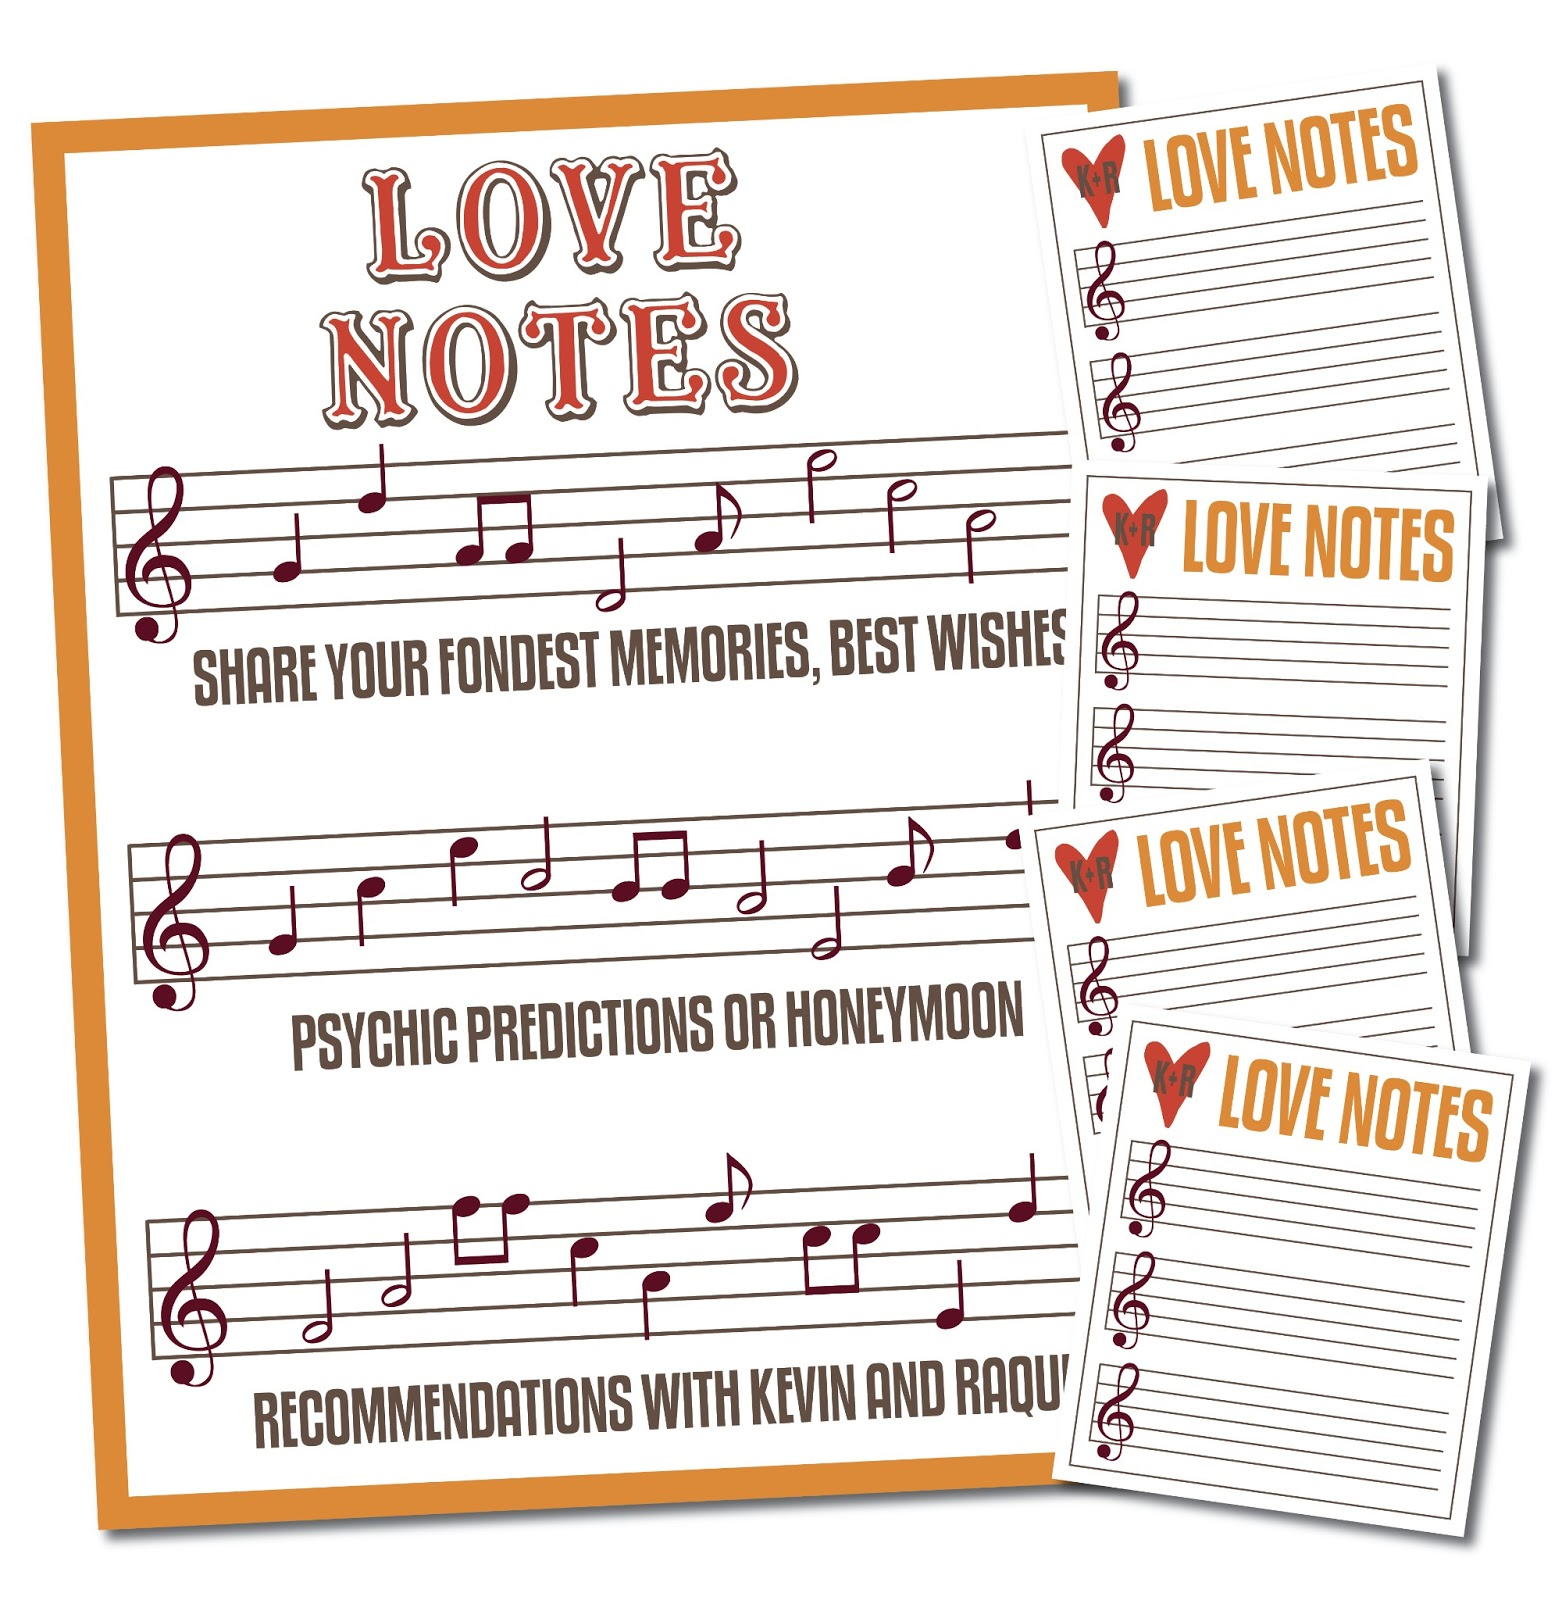 Love Notes | Free Wallpapers